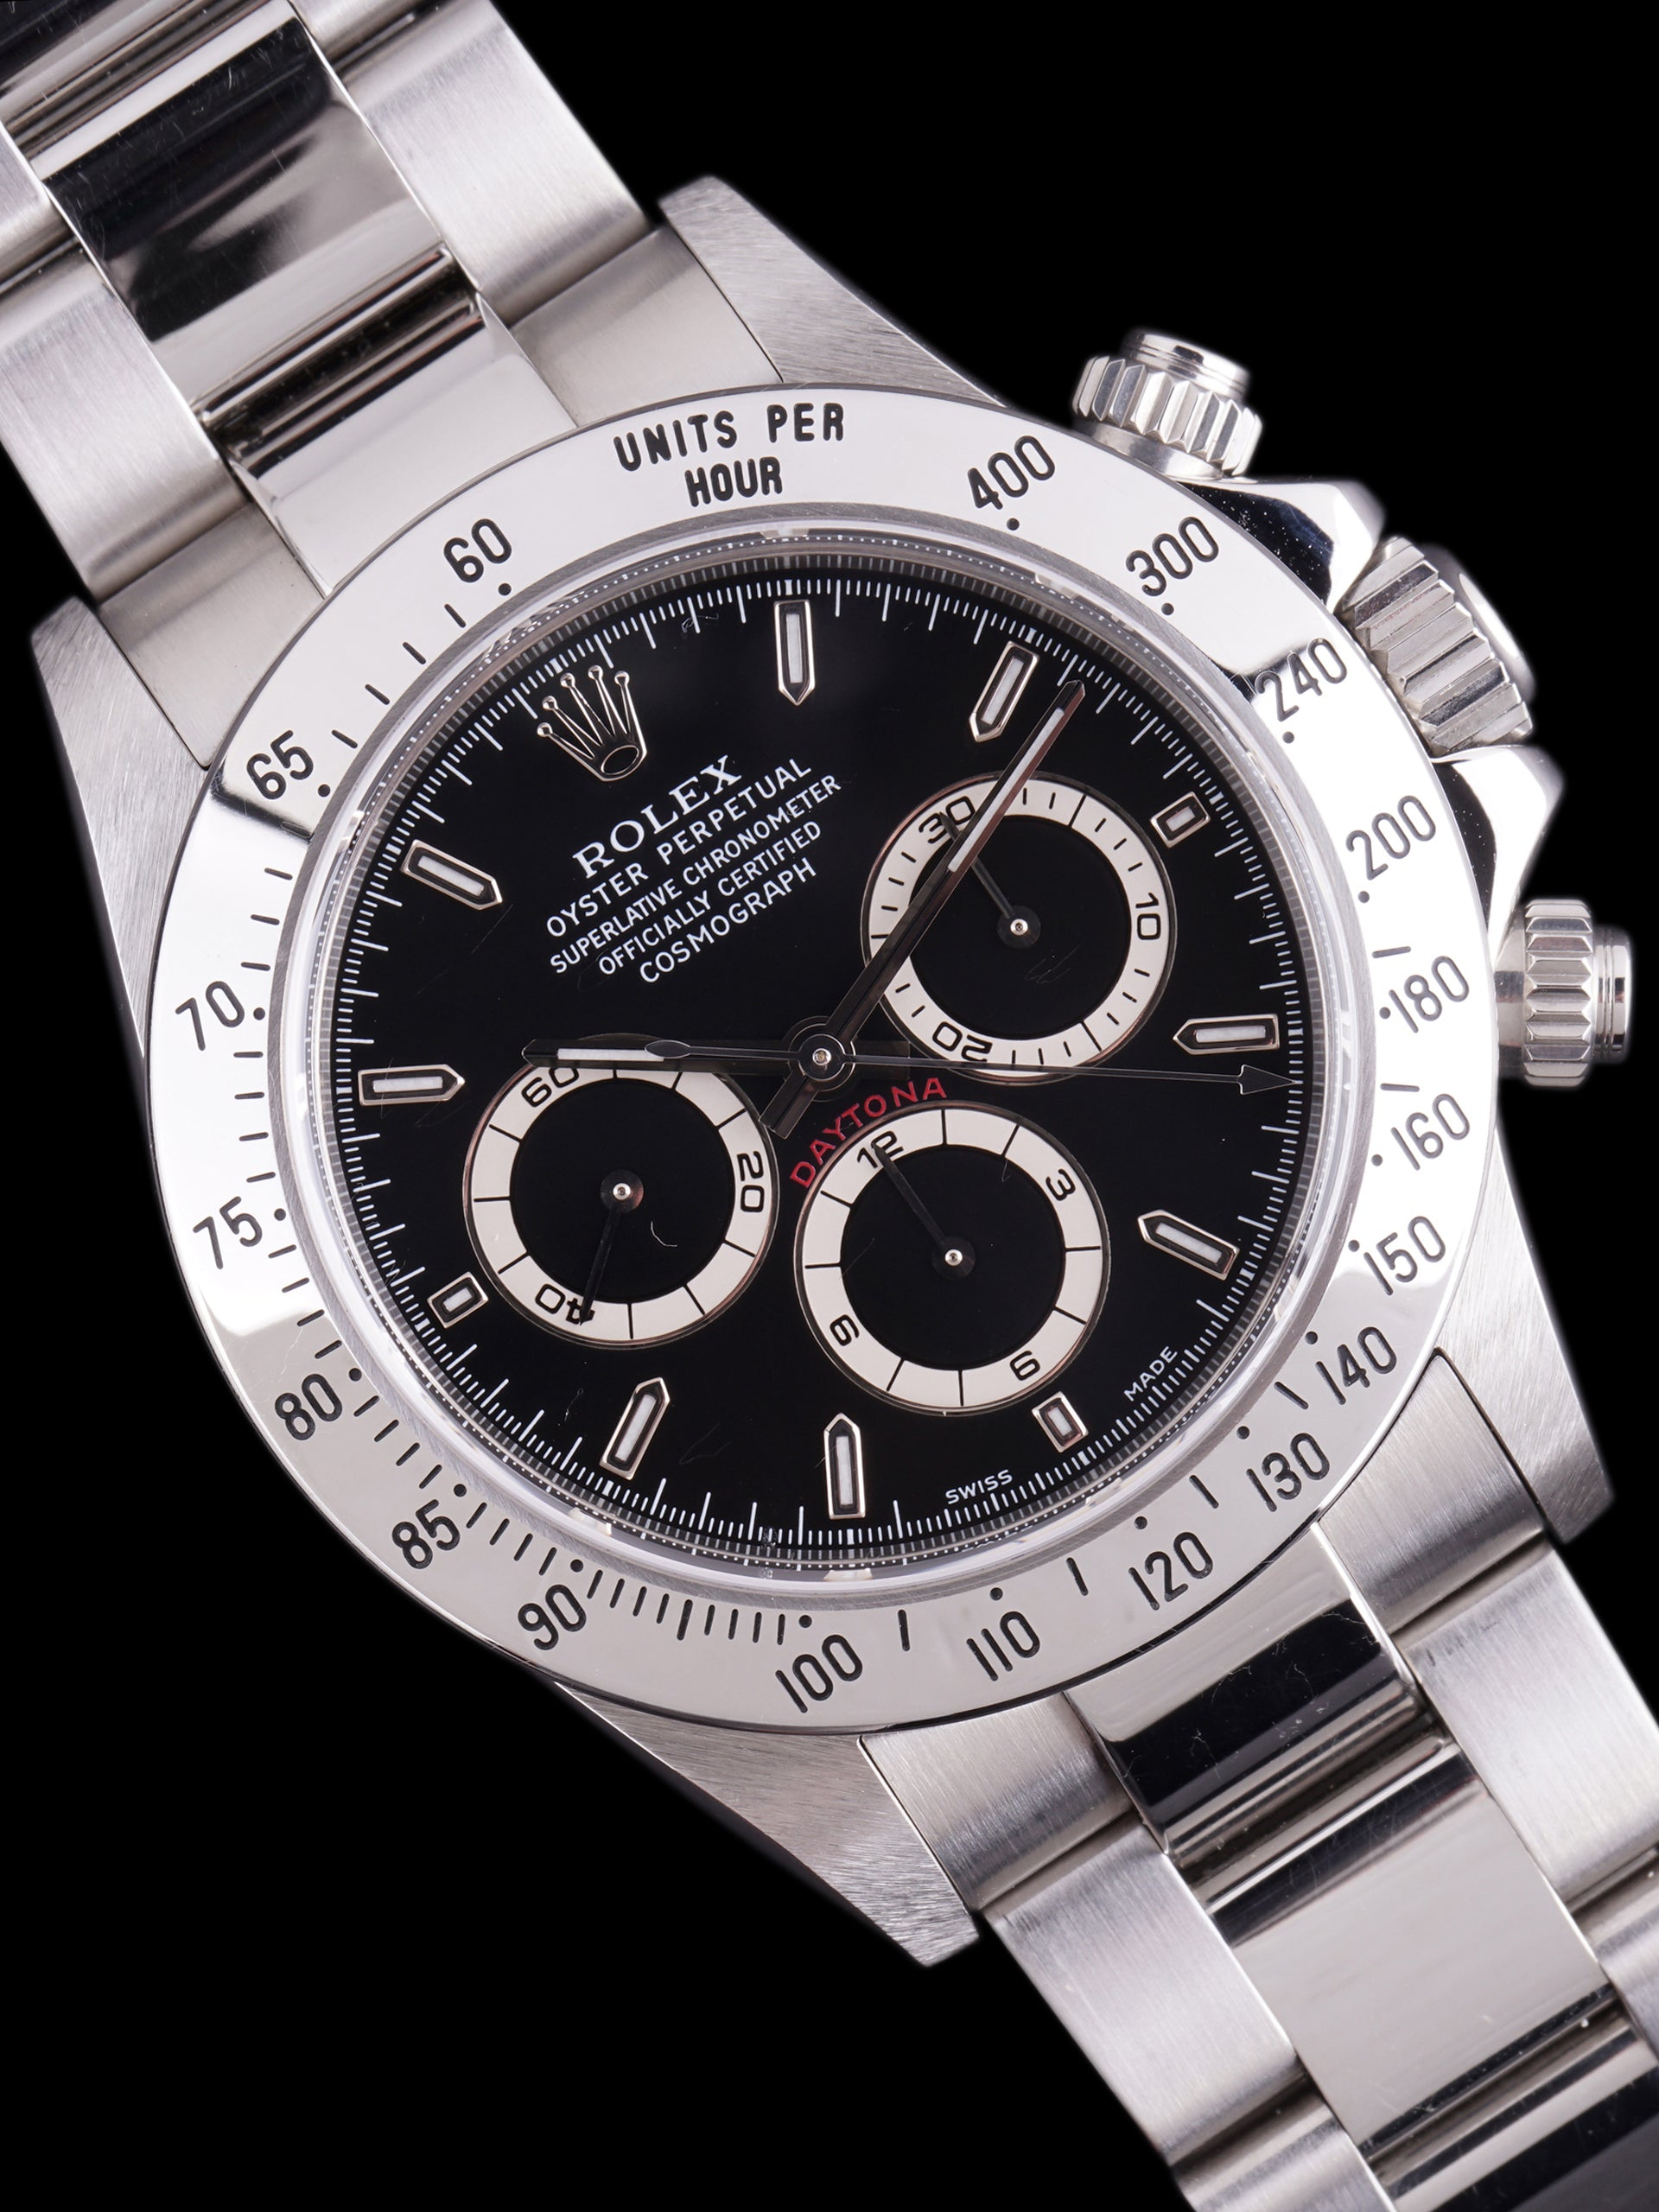 "*Like New* 1999 Rolex Daytona (Ref. 16520) Black Dial ""Mk. V"" W/ Guarantee Paper"